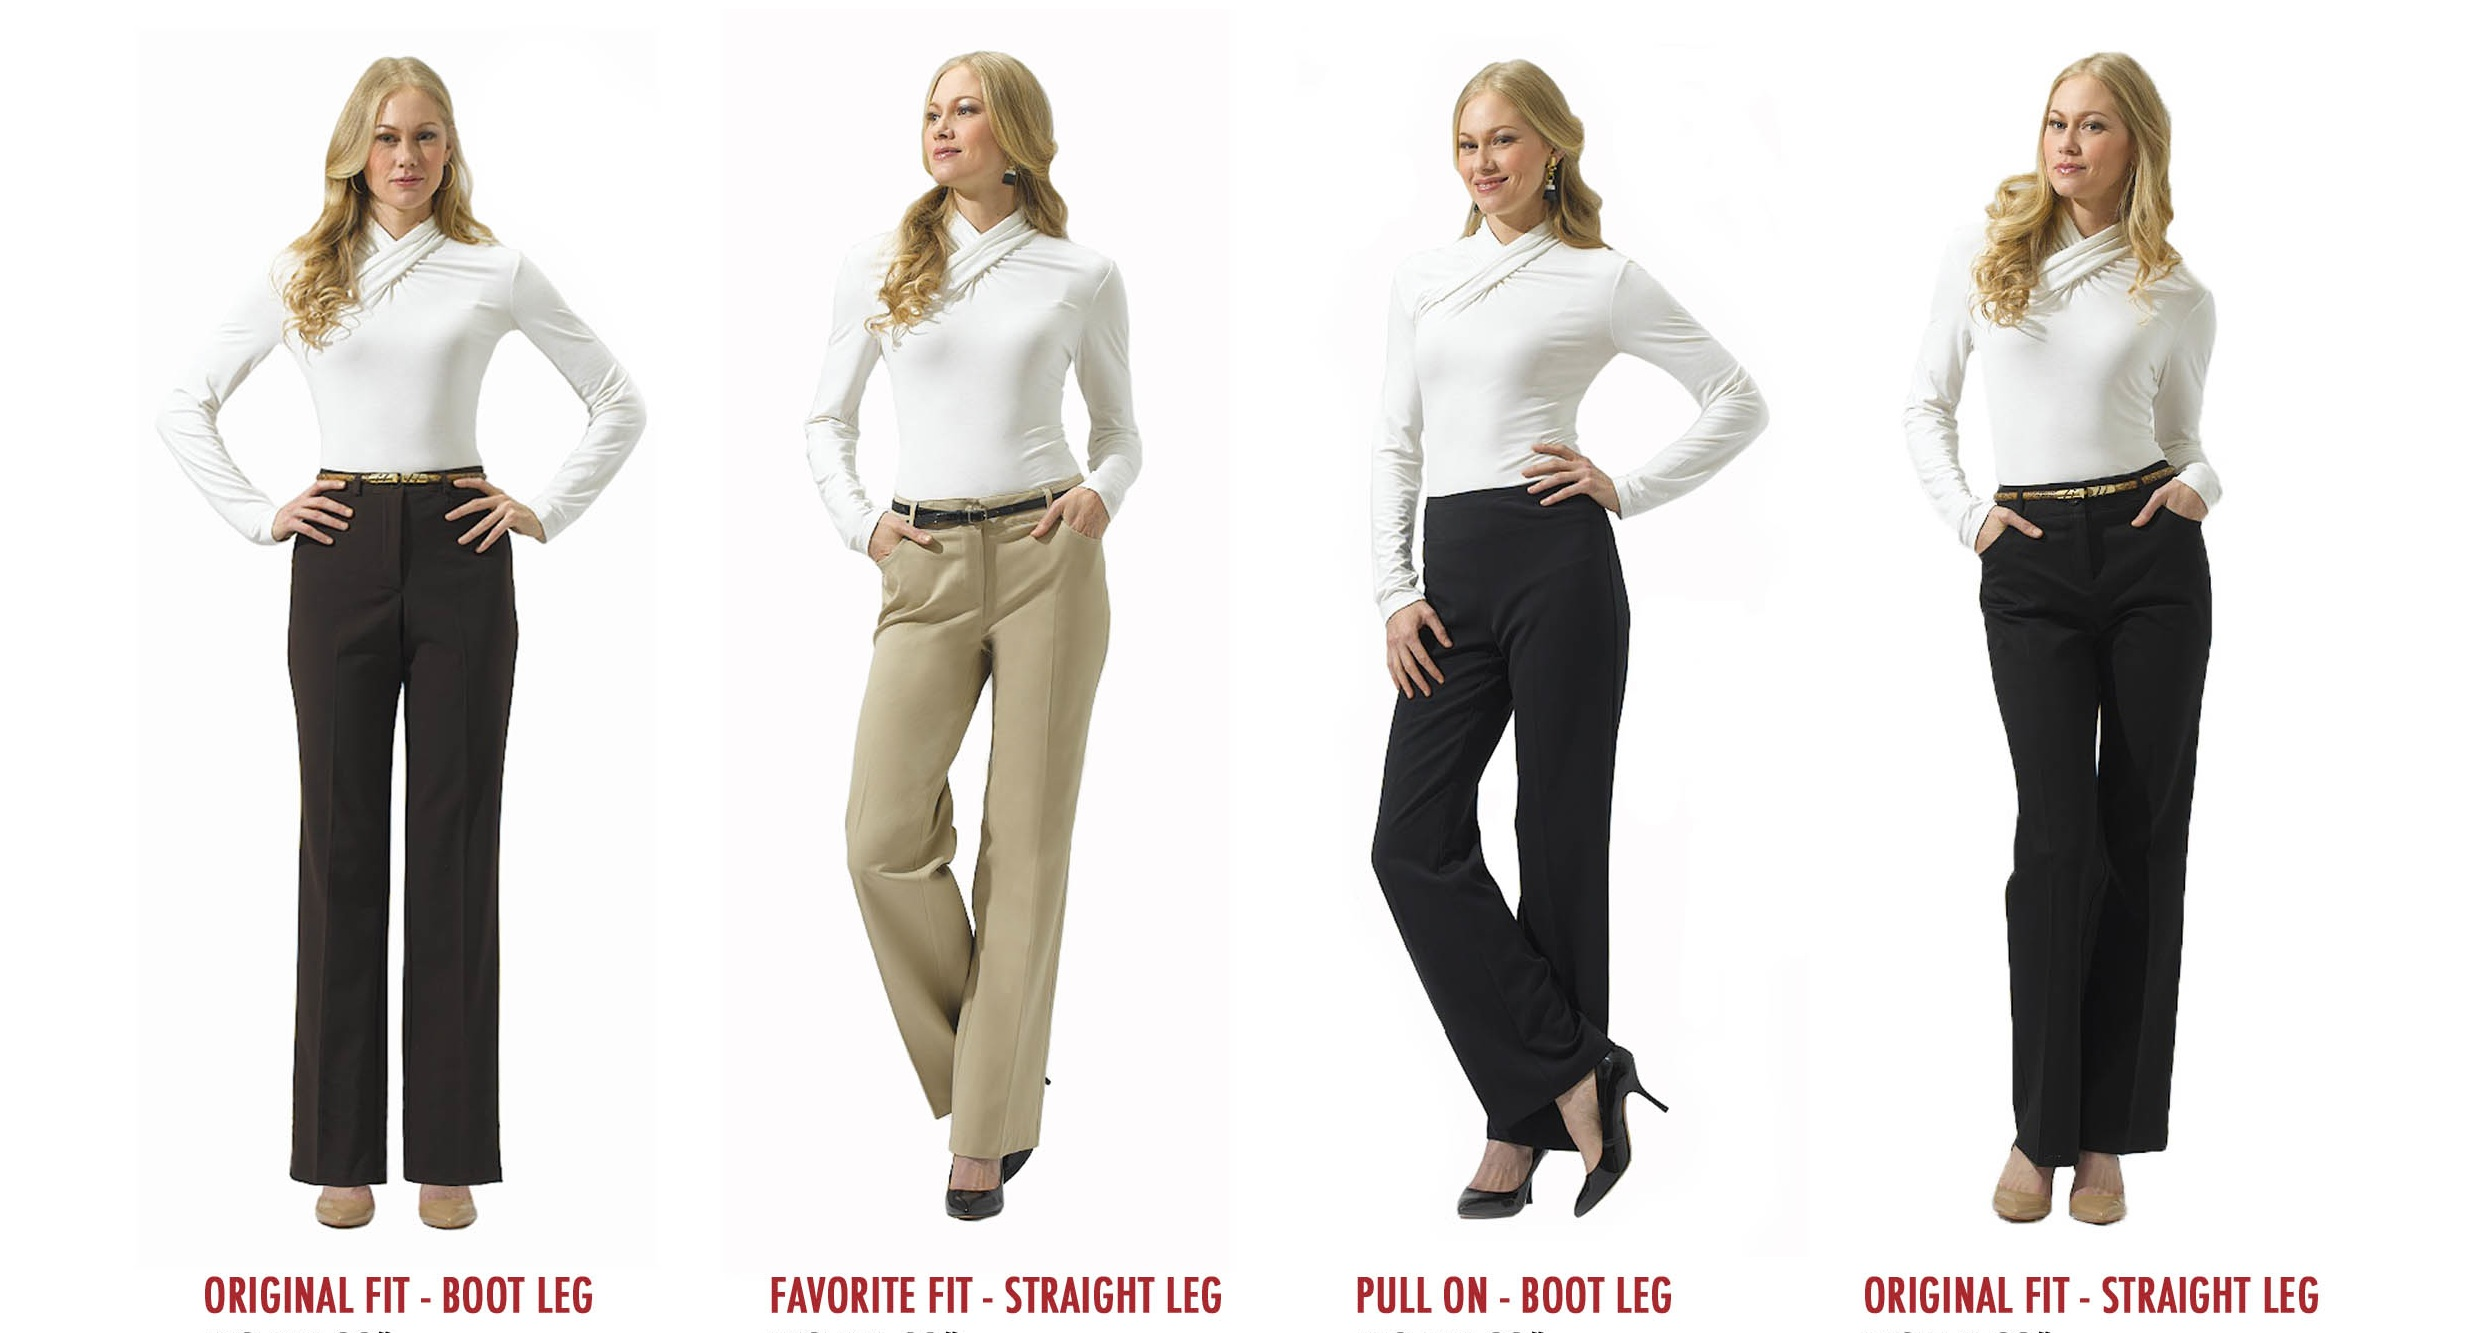 The Goods: Win a Pair of Industry Publicity's Favorite PR Girl Work Pants